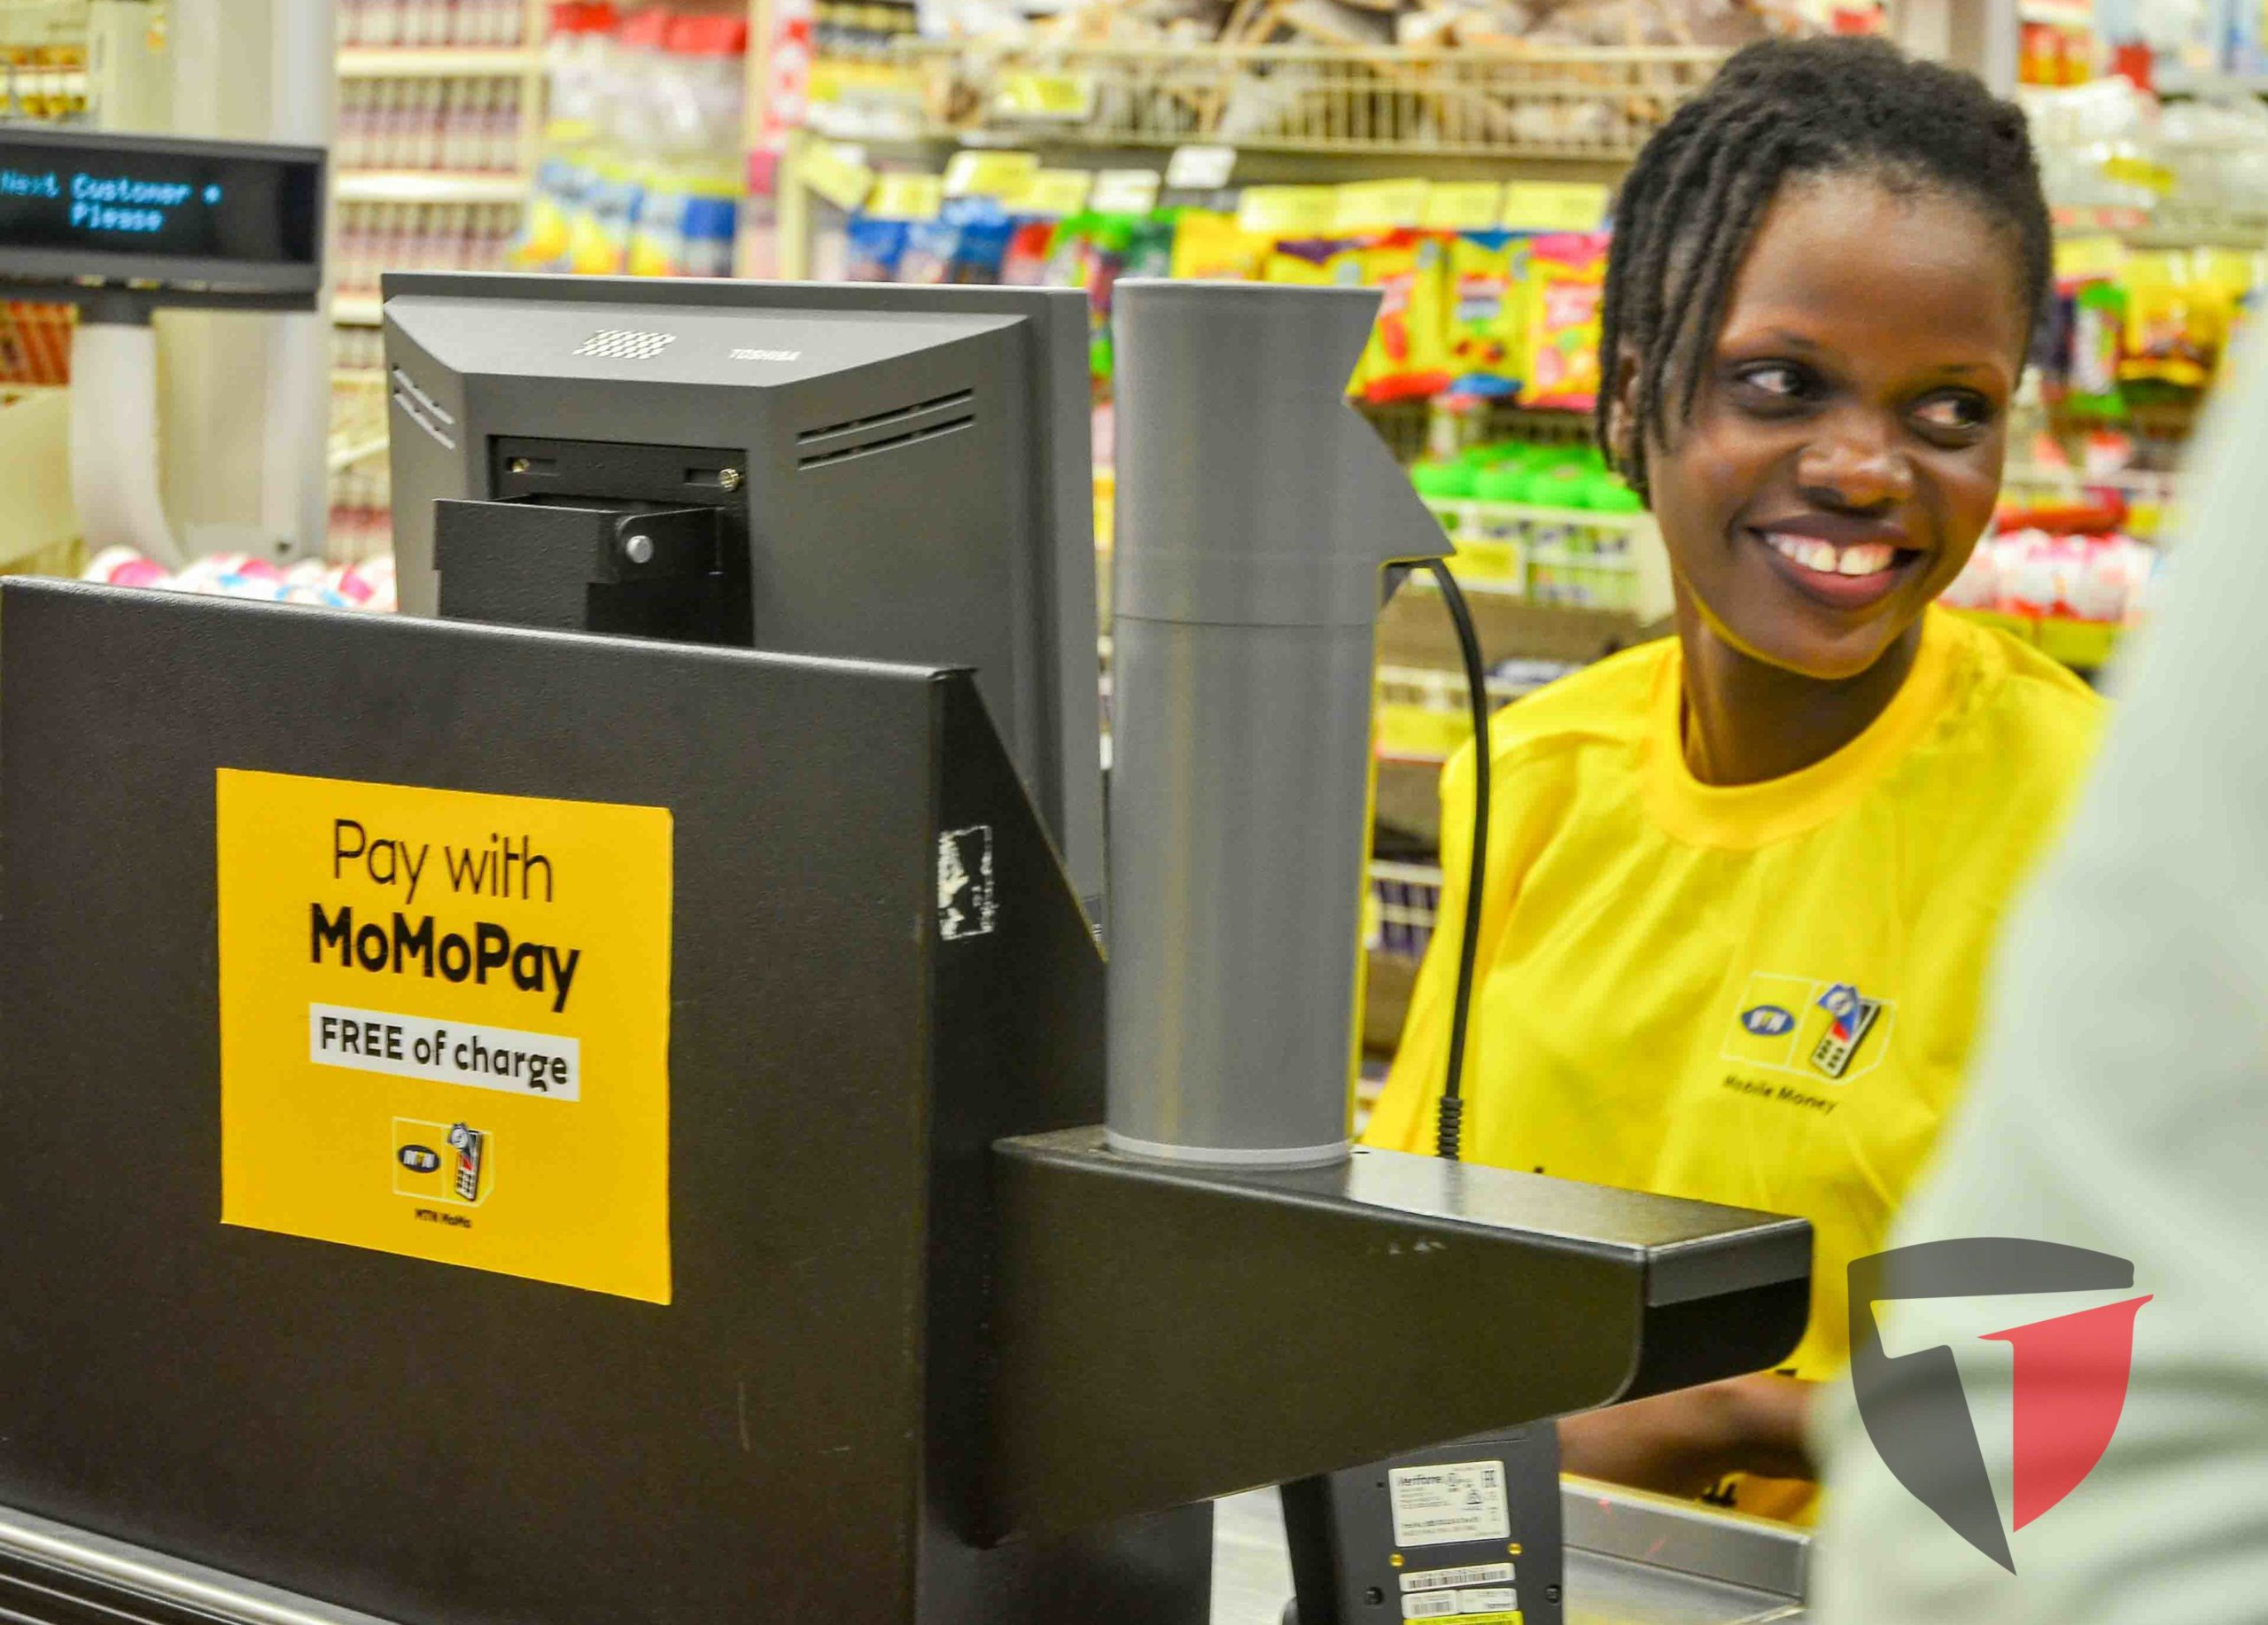 MTN MoMoPay Customers To Be Rewarded With Discounted Shopping this Festive Season 1 MUGIBSON WRITES